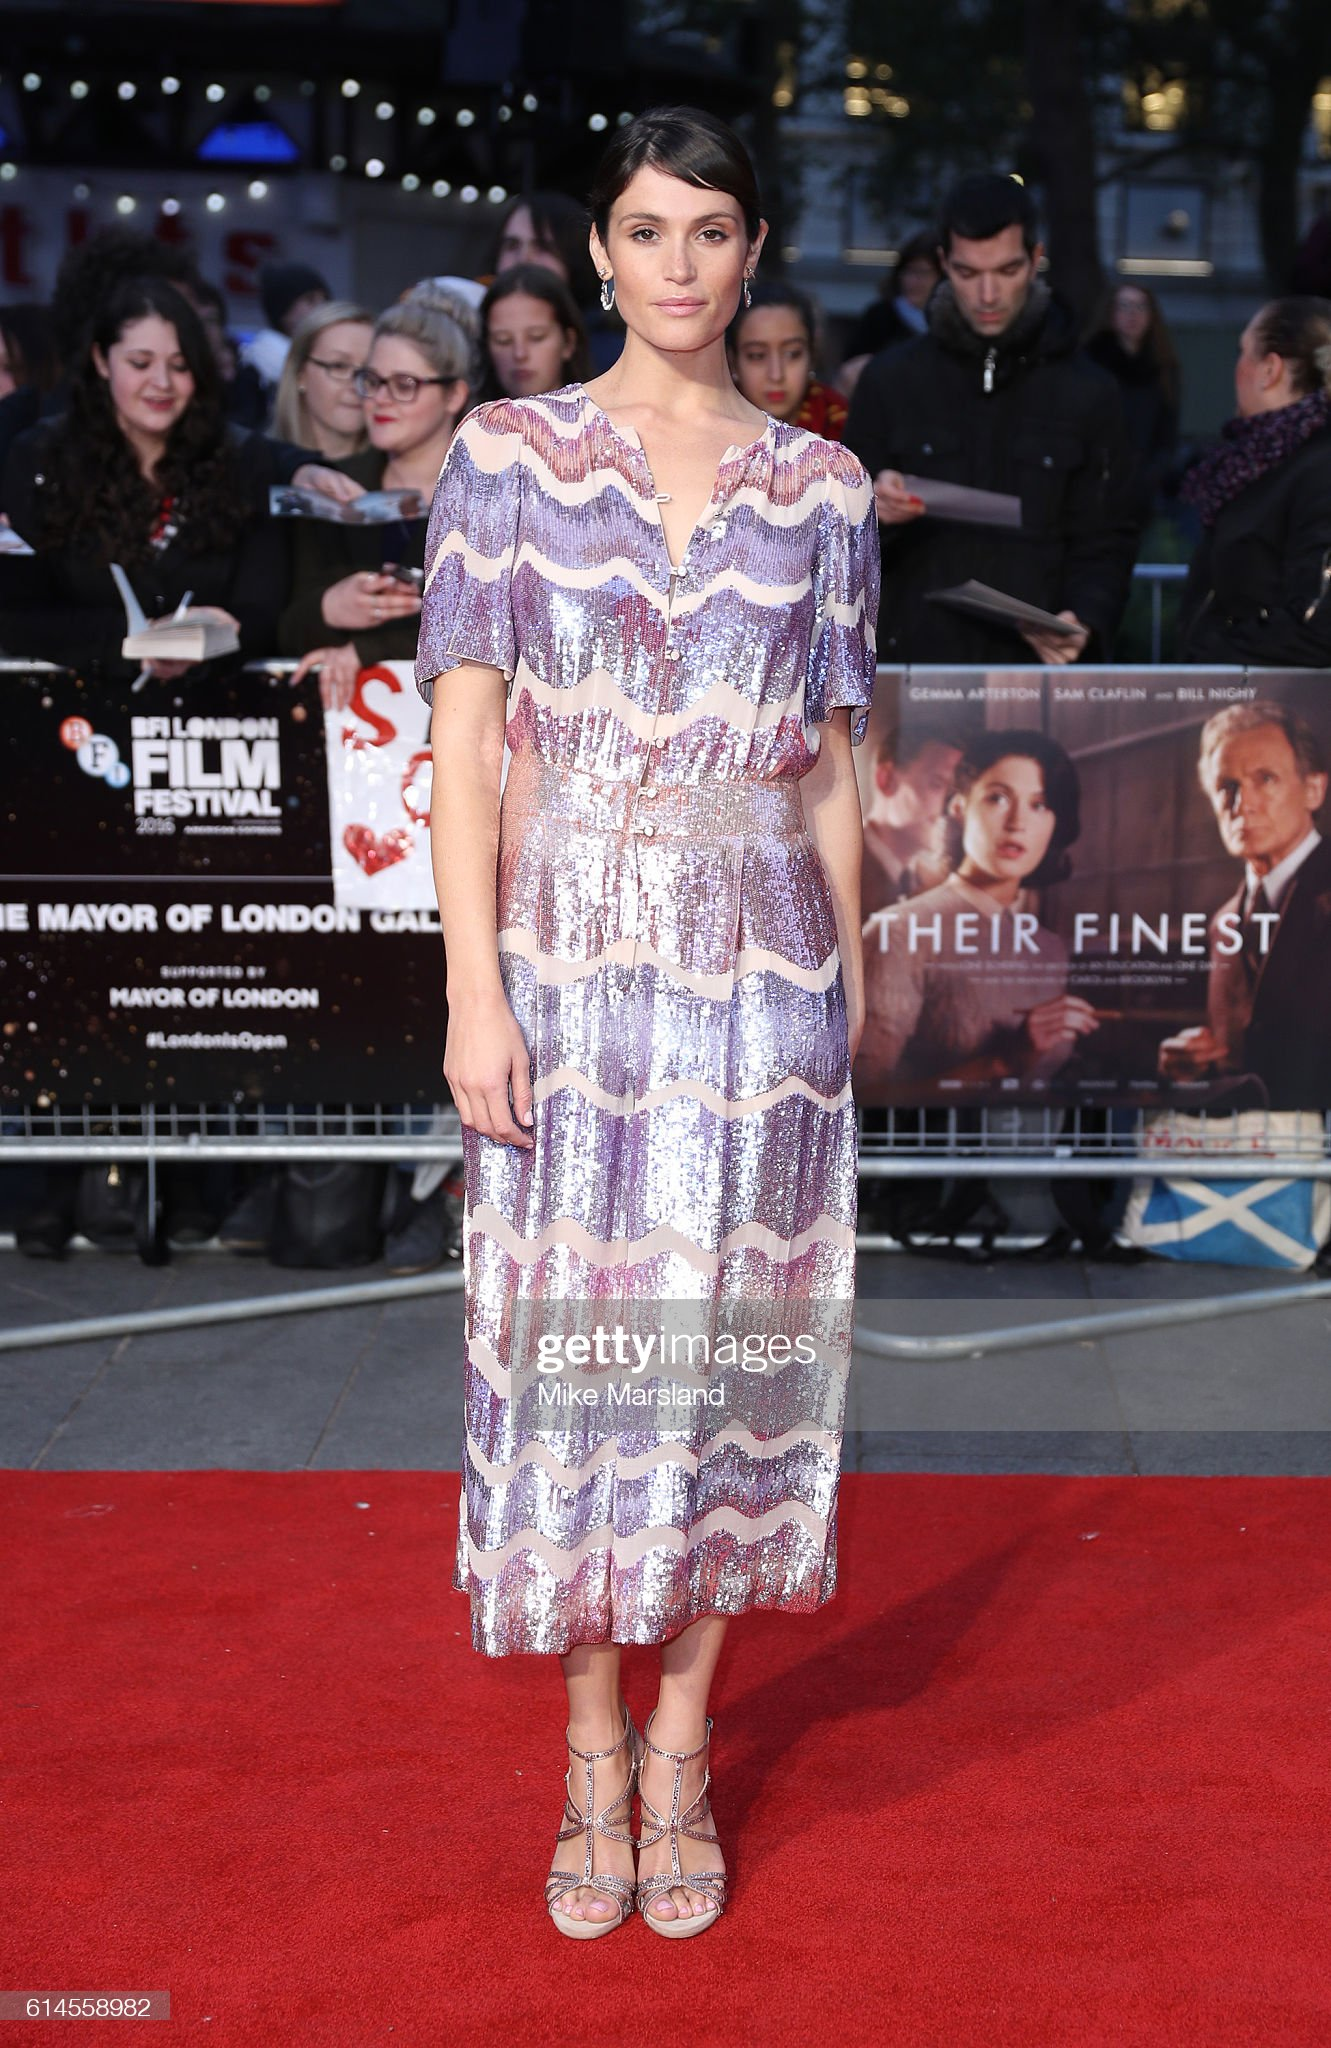 gemma-arterton-attends-their-finest-mayors-centrepiece-gala-screening-picture-id614558982